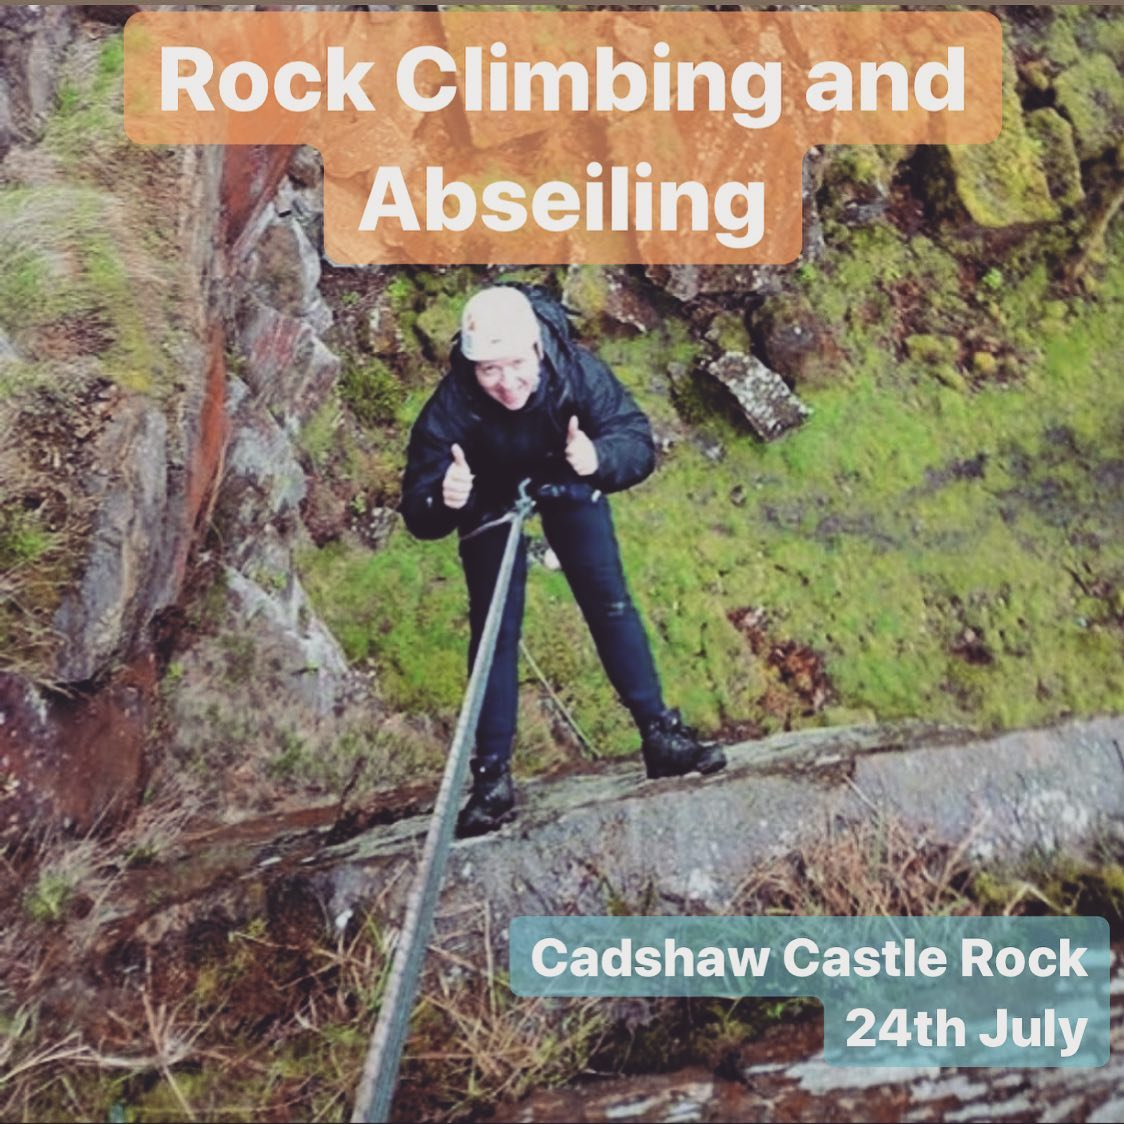 Spaces rock climbing and abseiling in North Manchester on 24th July! More info and booking at www…